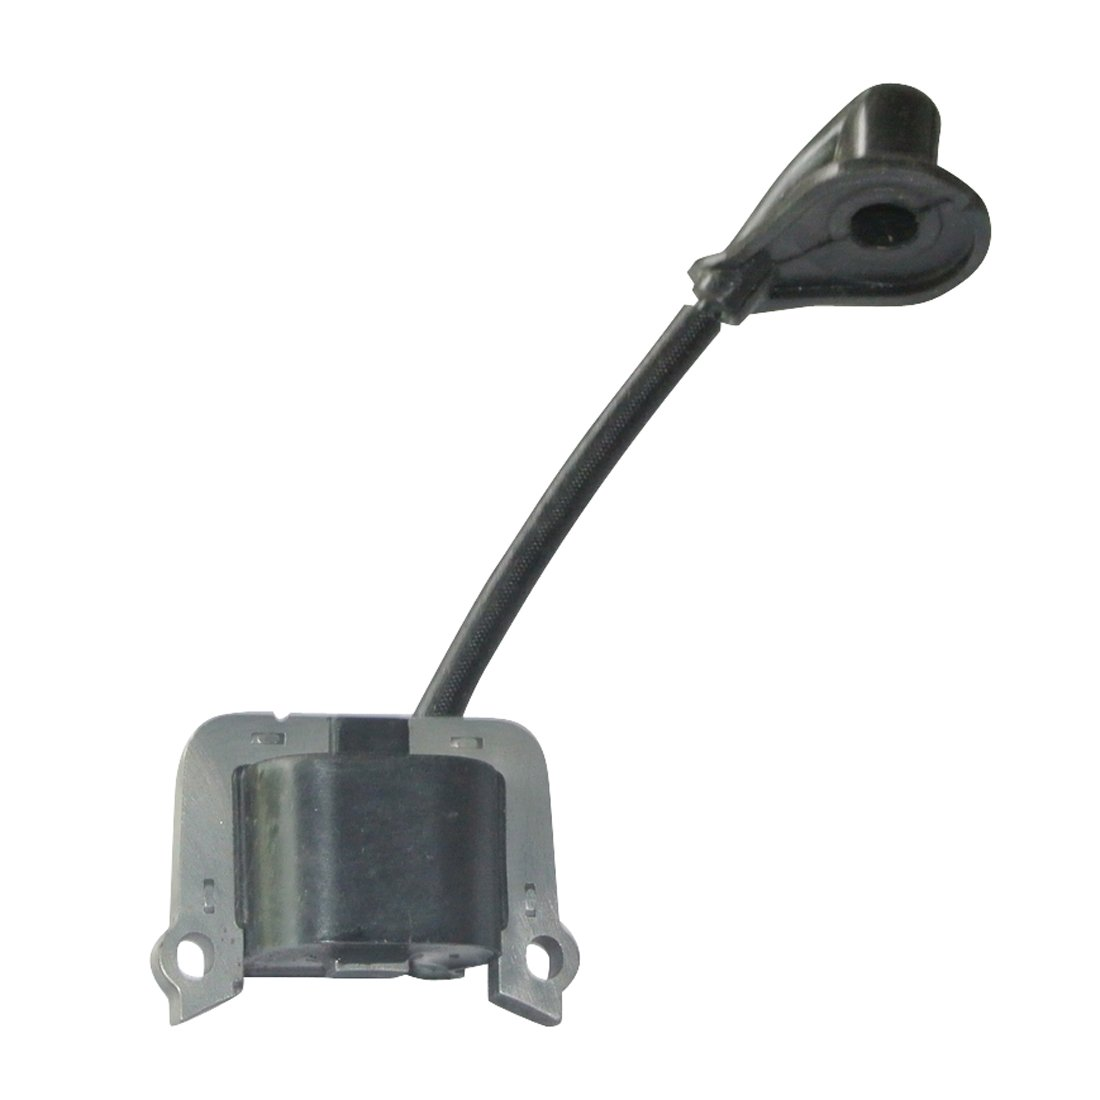 New Ignition Coil Fit For MITSUBISHI TL43 TL50 TL52 BG430 Grass Trimmer Strimmer